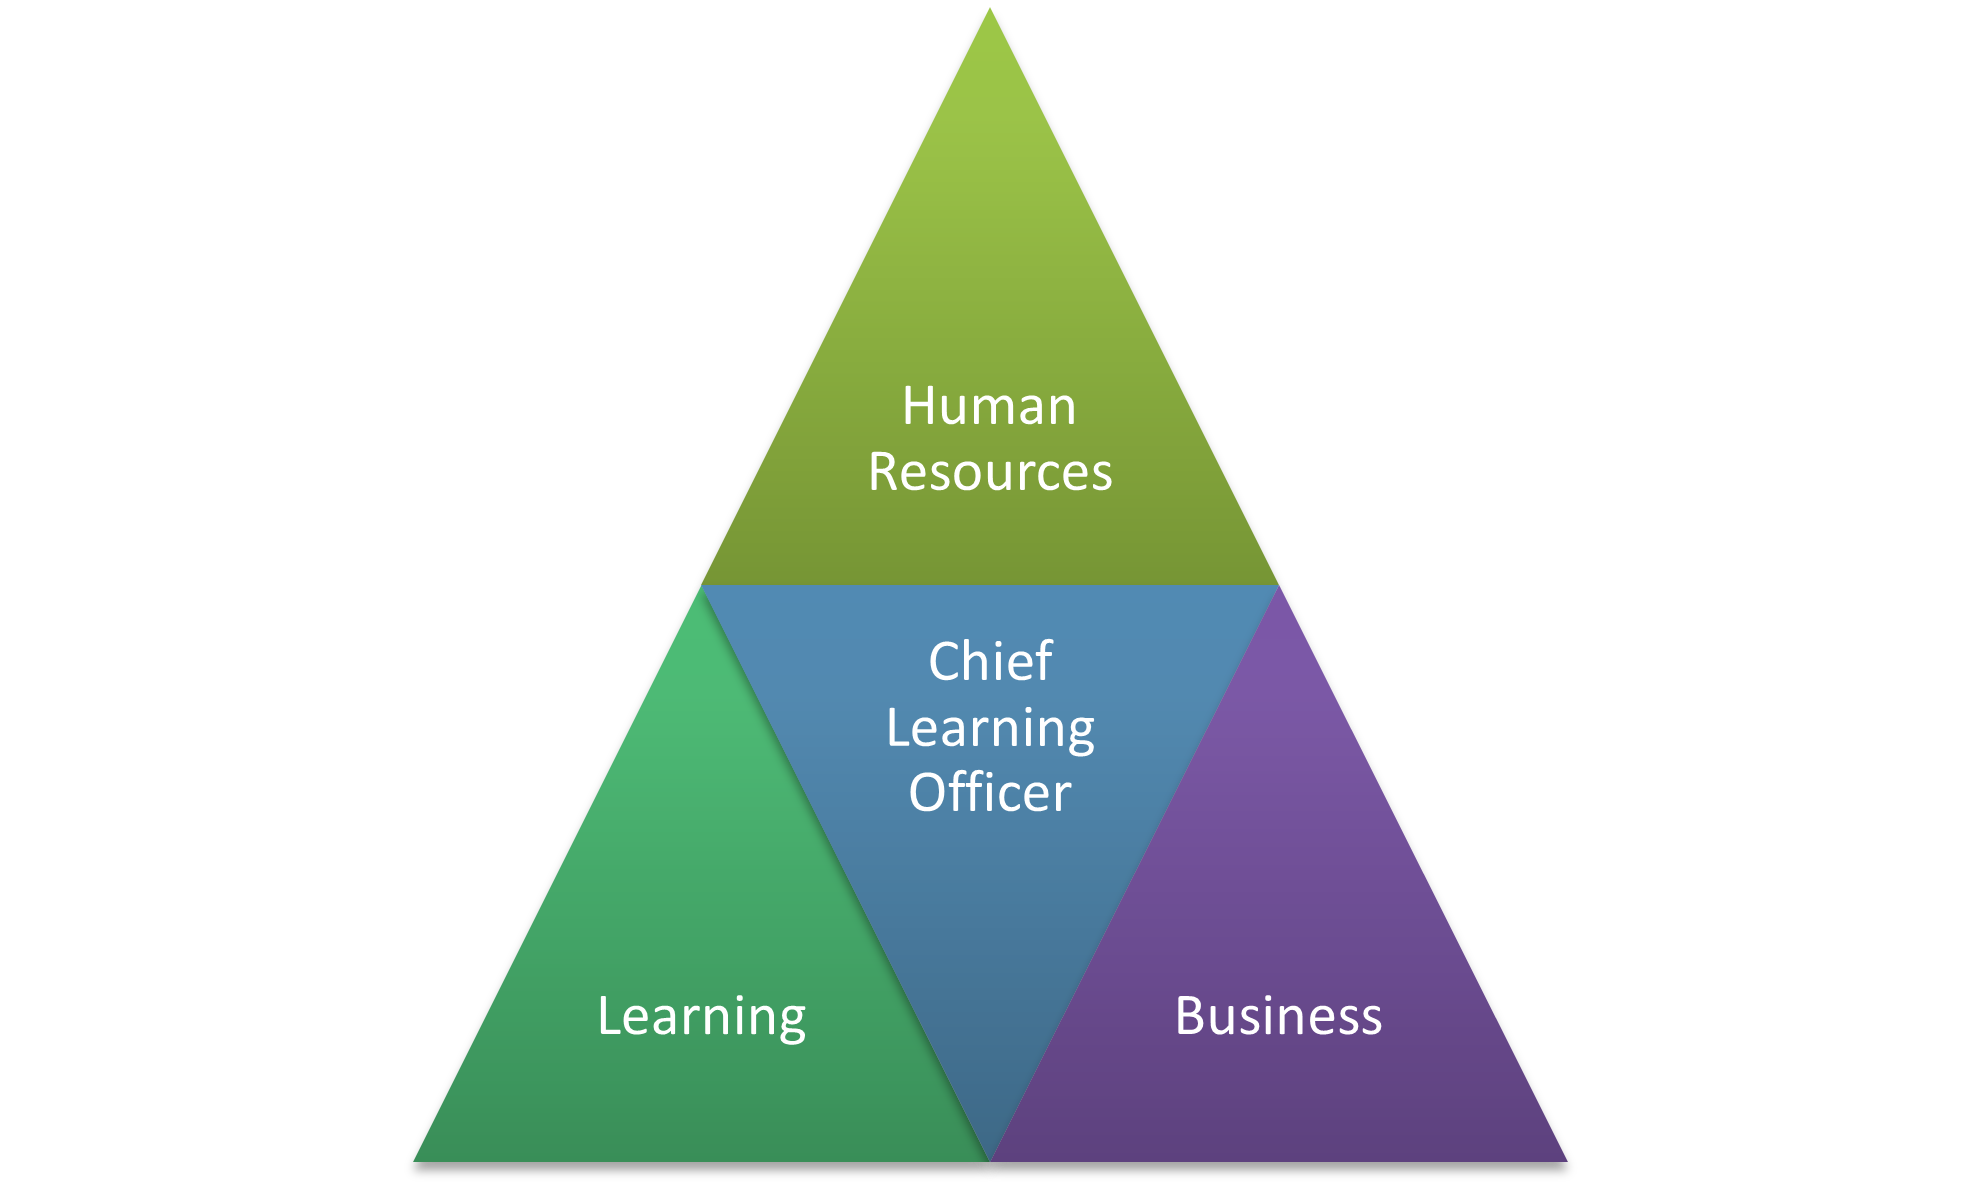 Chief Learning Officer as the Bridge